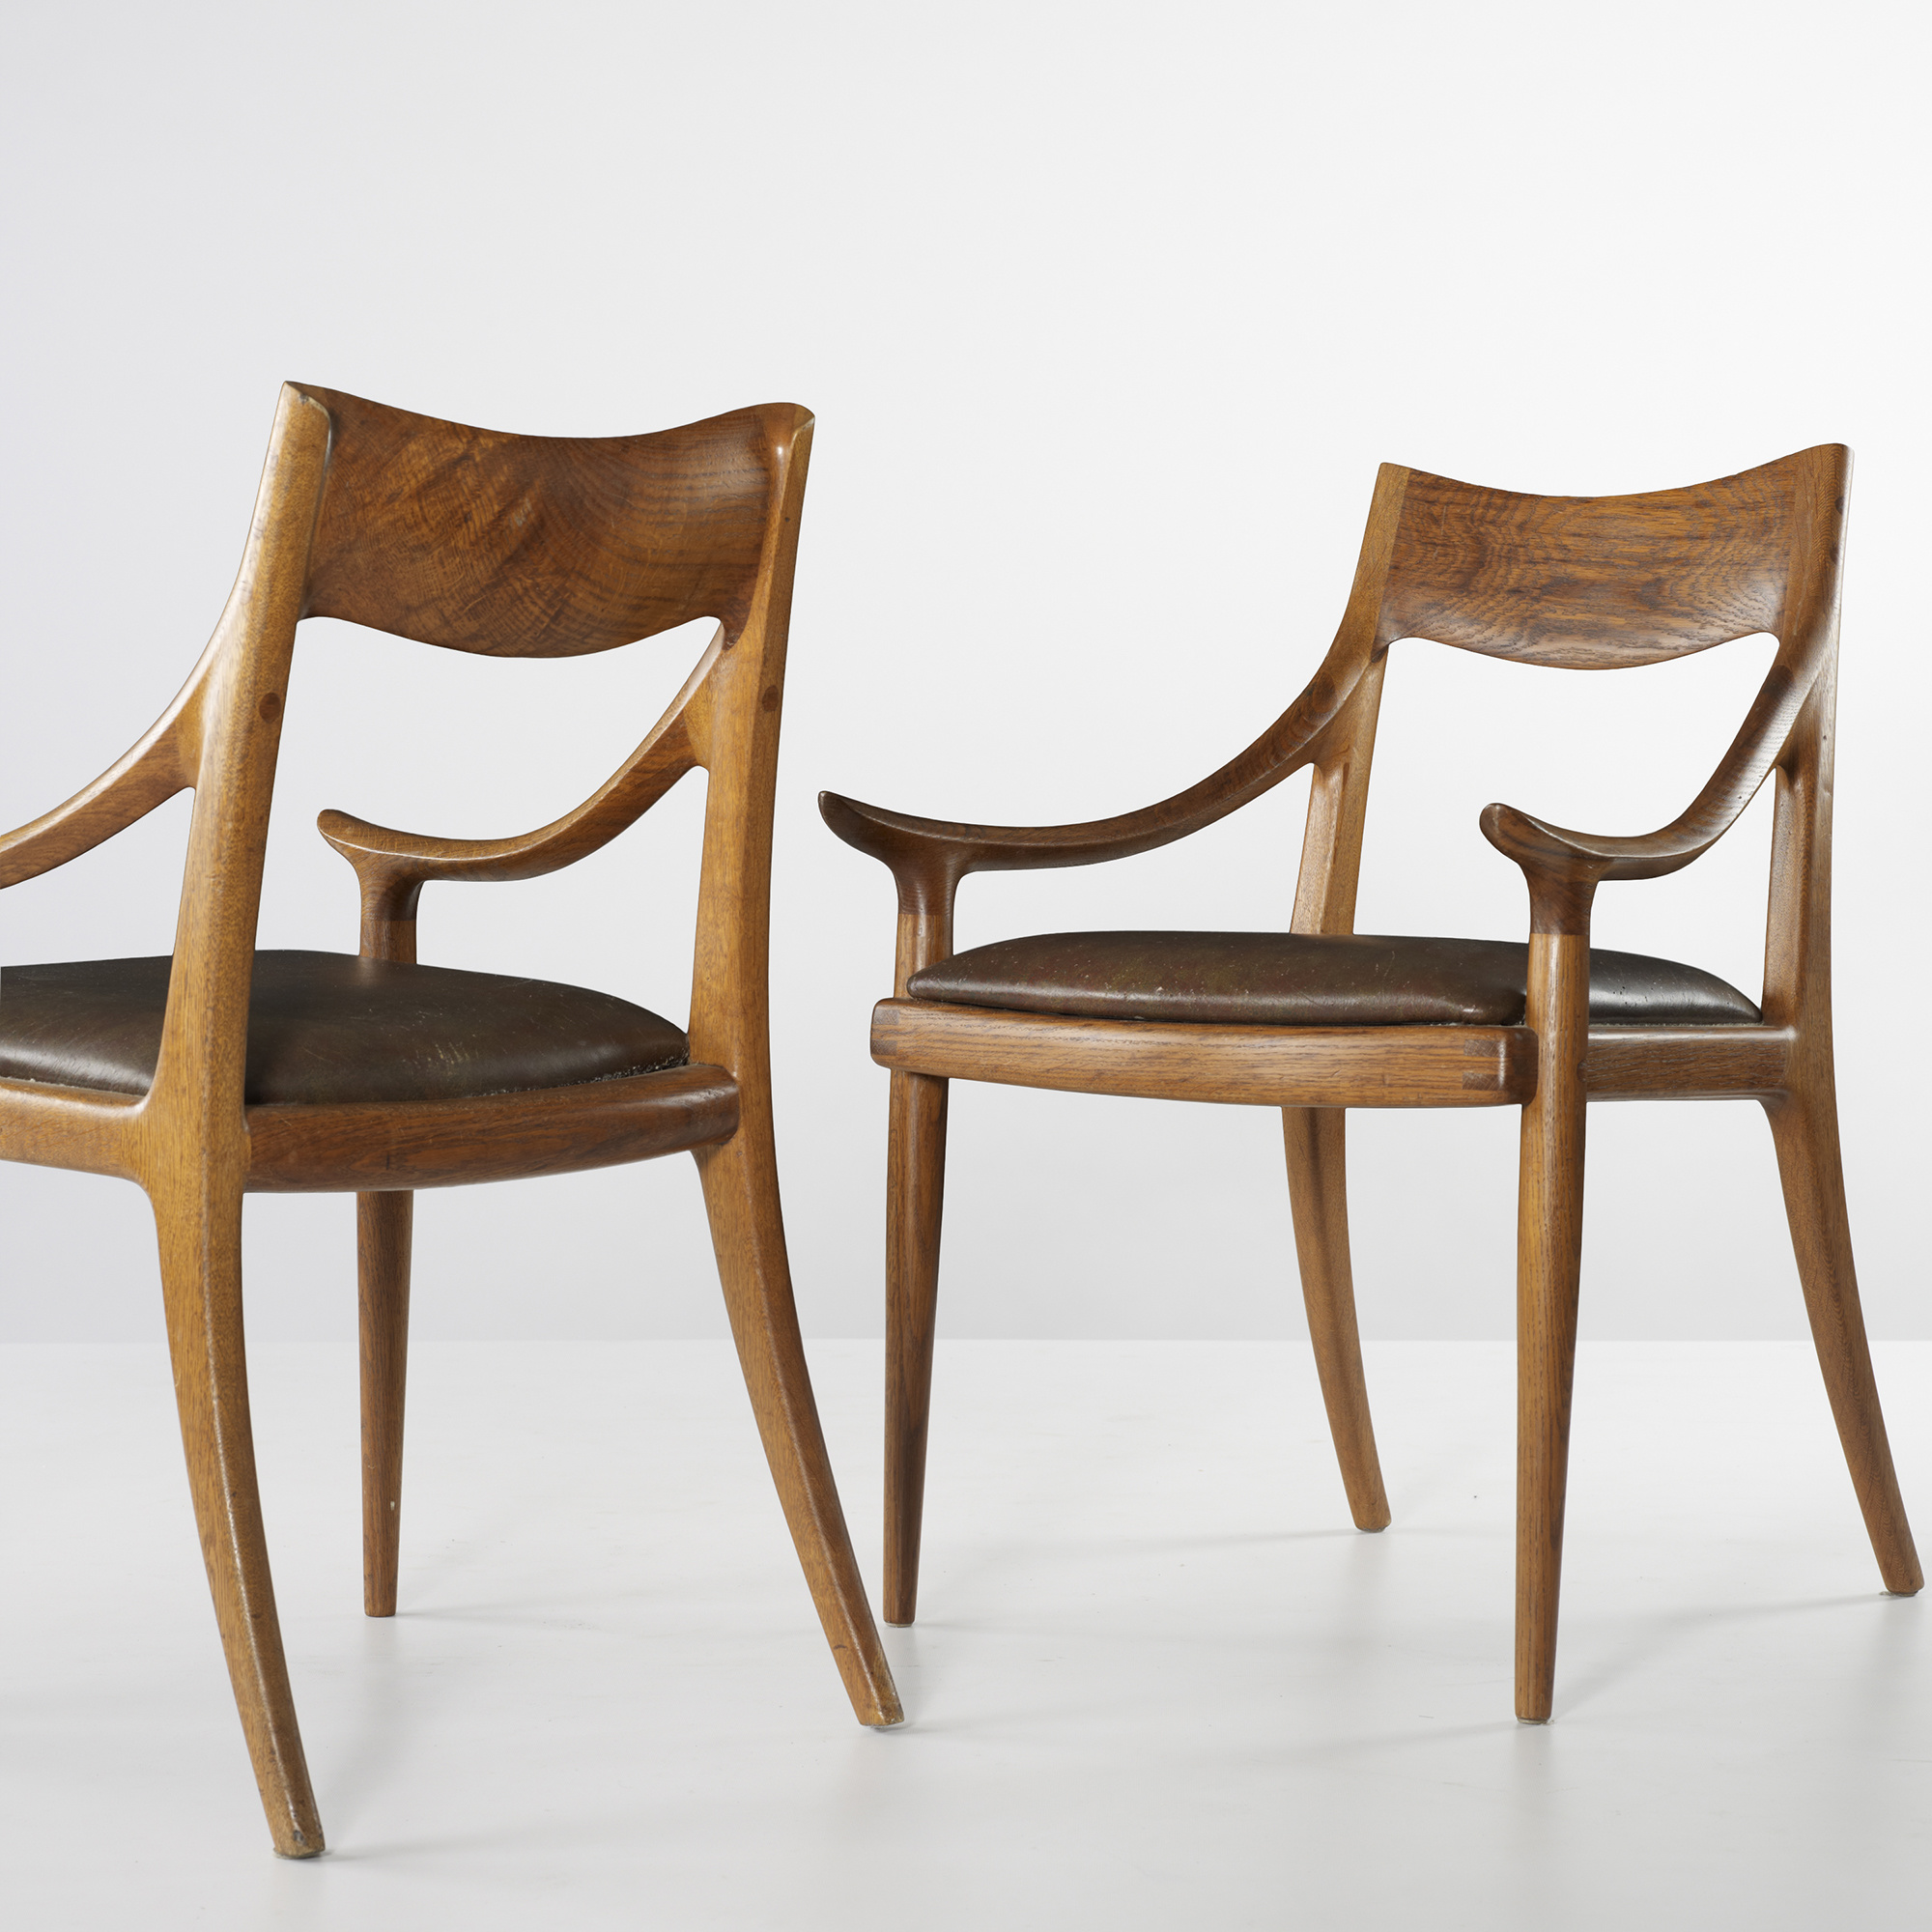 162: SAM MALOOF, dining chairs, set of six < Important